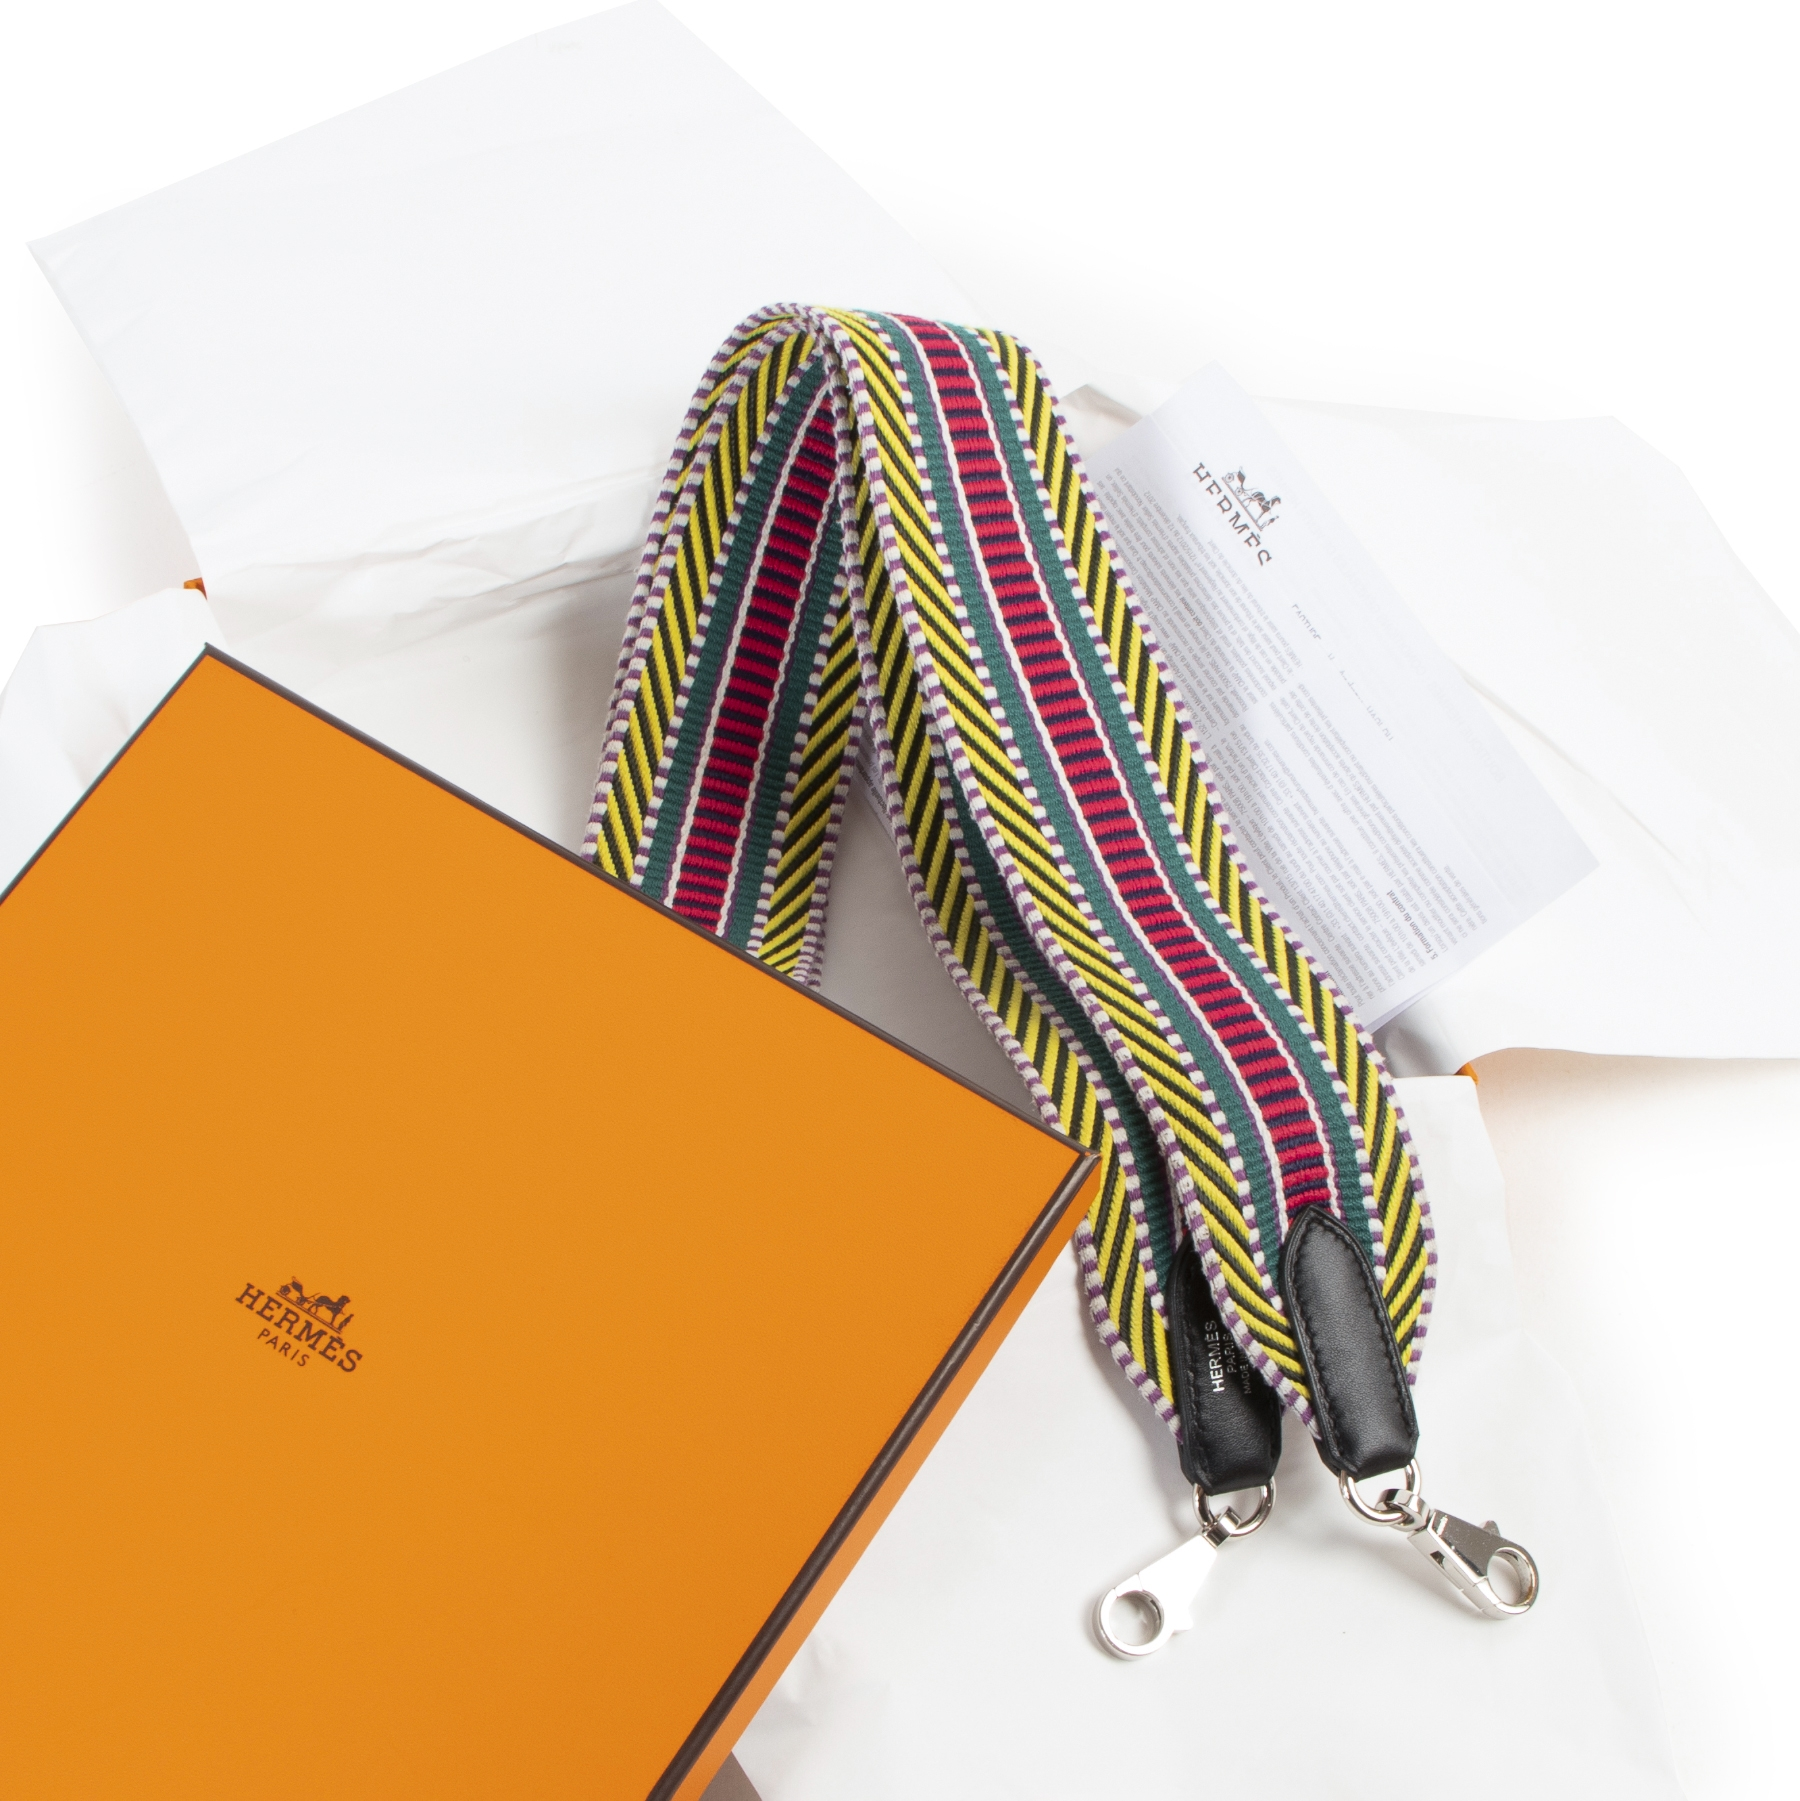 Hermès Multicolour Band 50MM Sangle Cavale/Veau Swift Bag Strap. Authentieke tweedehands Hermès accessoires bij LabelLOV Antwerpen. Authentique seconde-main luxury en ligne webshop LabelLOV. Authentic preloved Hermès bag strap accessories at LabelLOV Antw